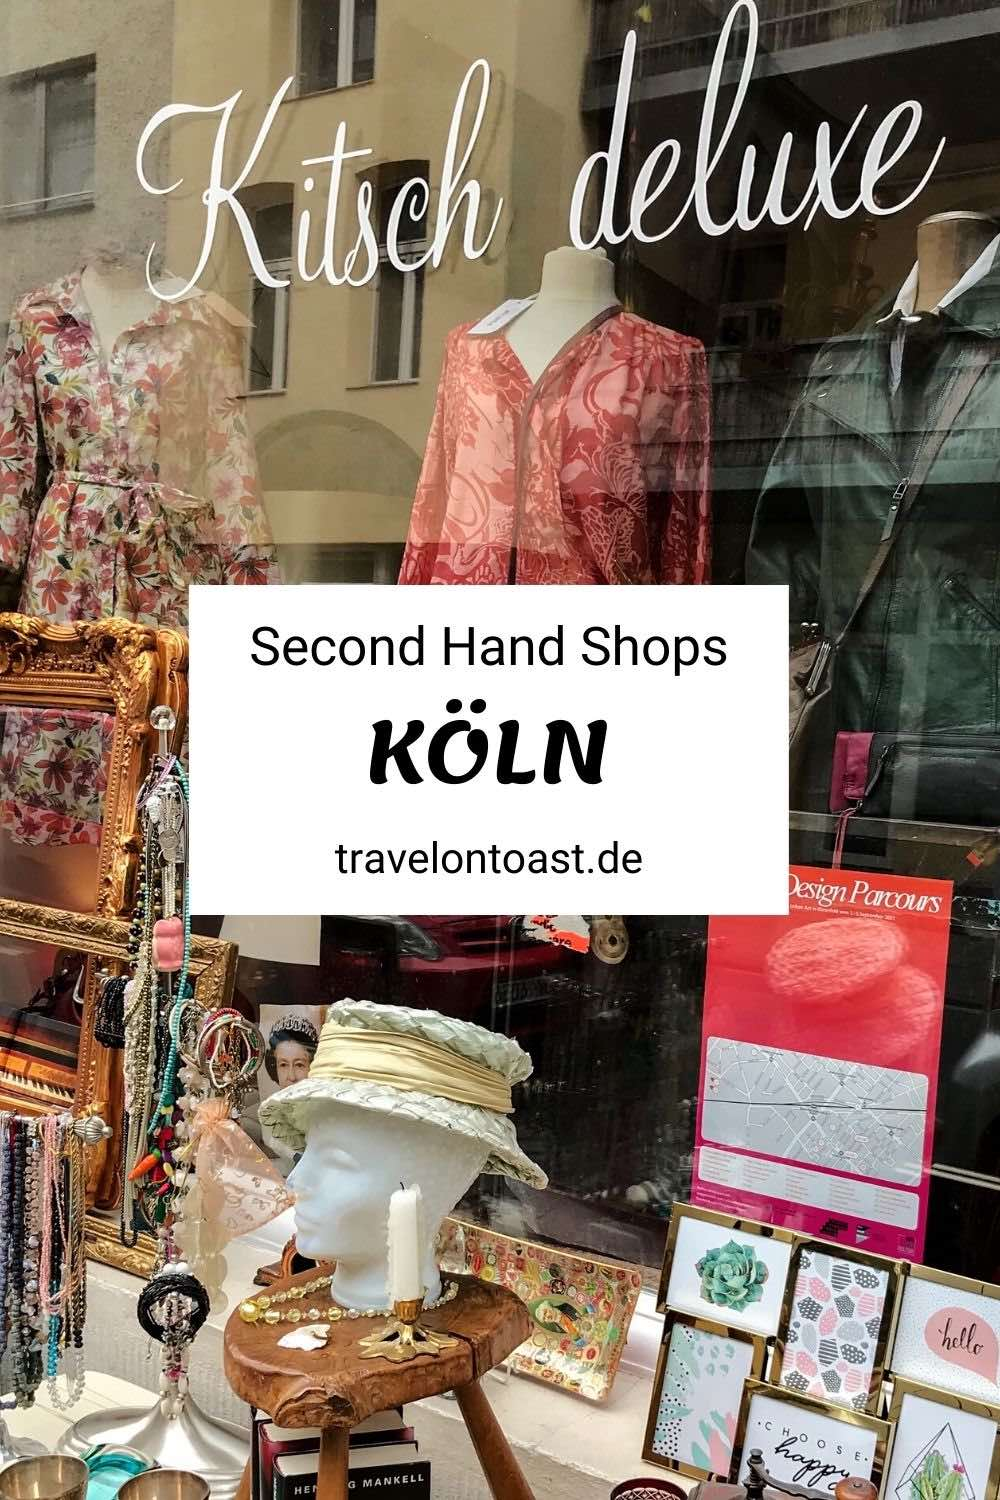 As a fan of second hand shops you will have a lot of fun in Cologne!  I lived in the cathedral city for twelve years and visited many, many second-hand shops.  In the travel blog you will find my tips for vintage shops where you can buy cheap and sustainable outfits and fashion - whether on Ehrenstrasse, Ehrenfeld or in the Belgian Quarter.  Have fun with second hand shopping!